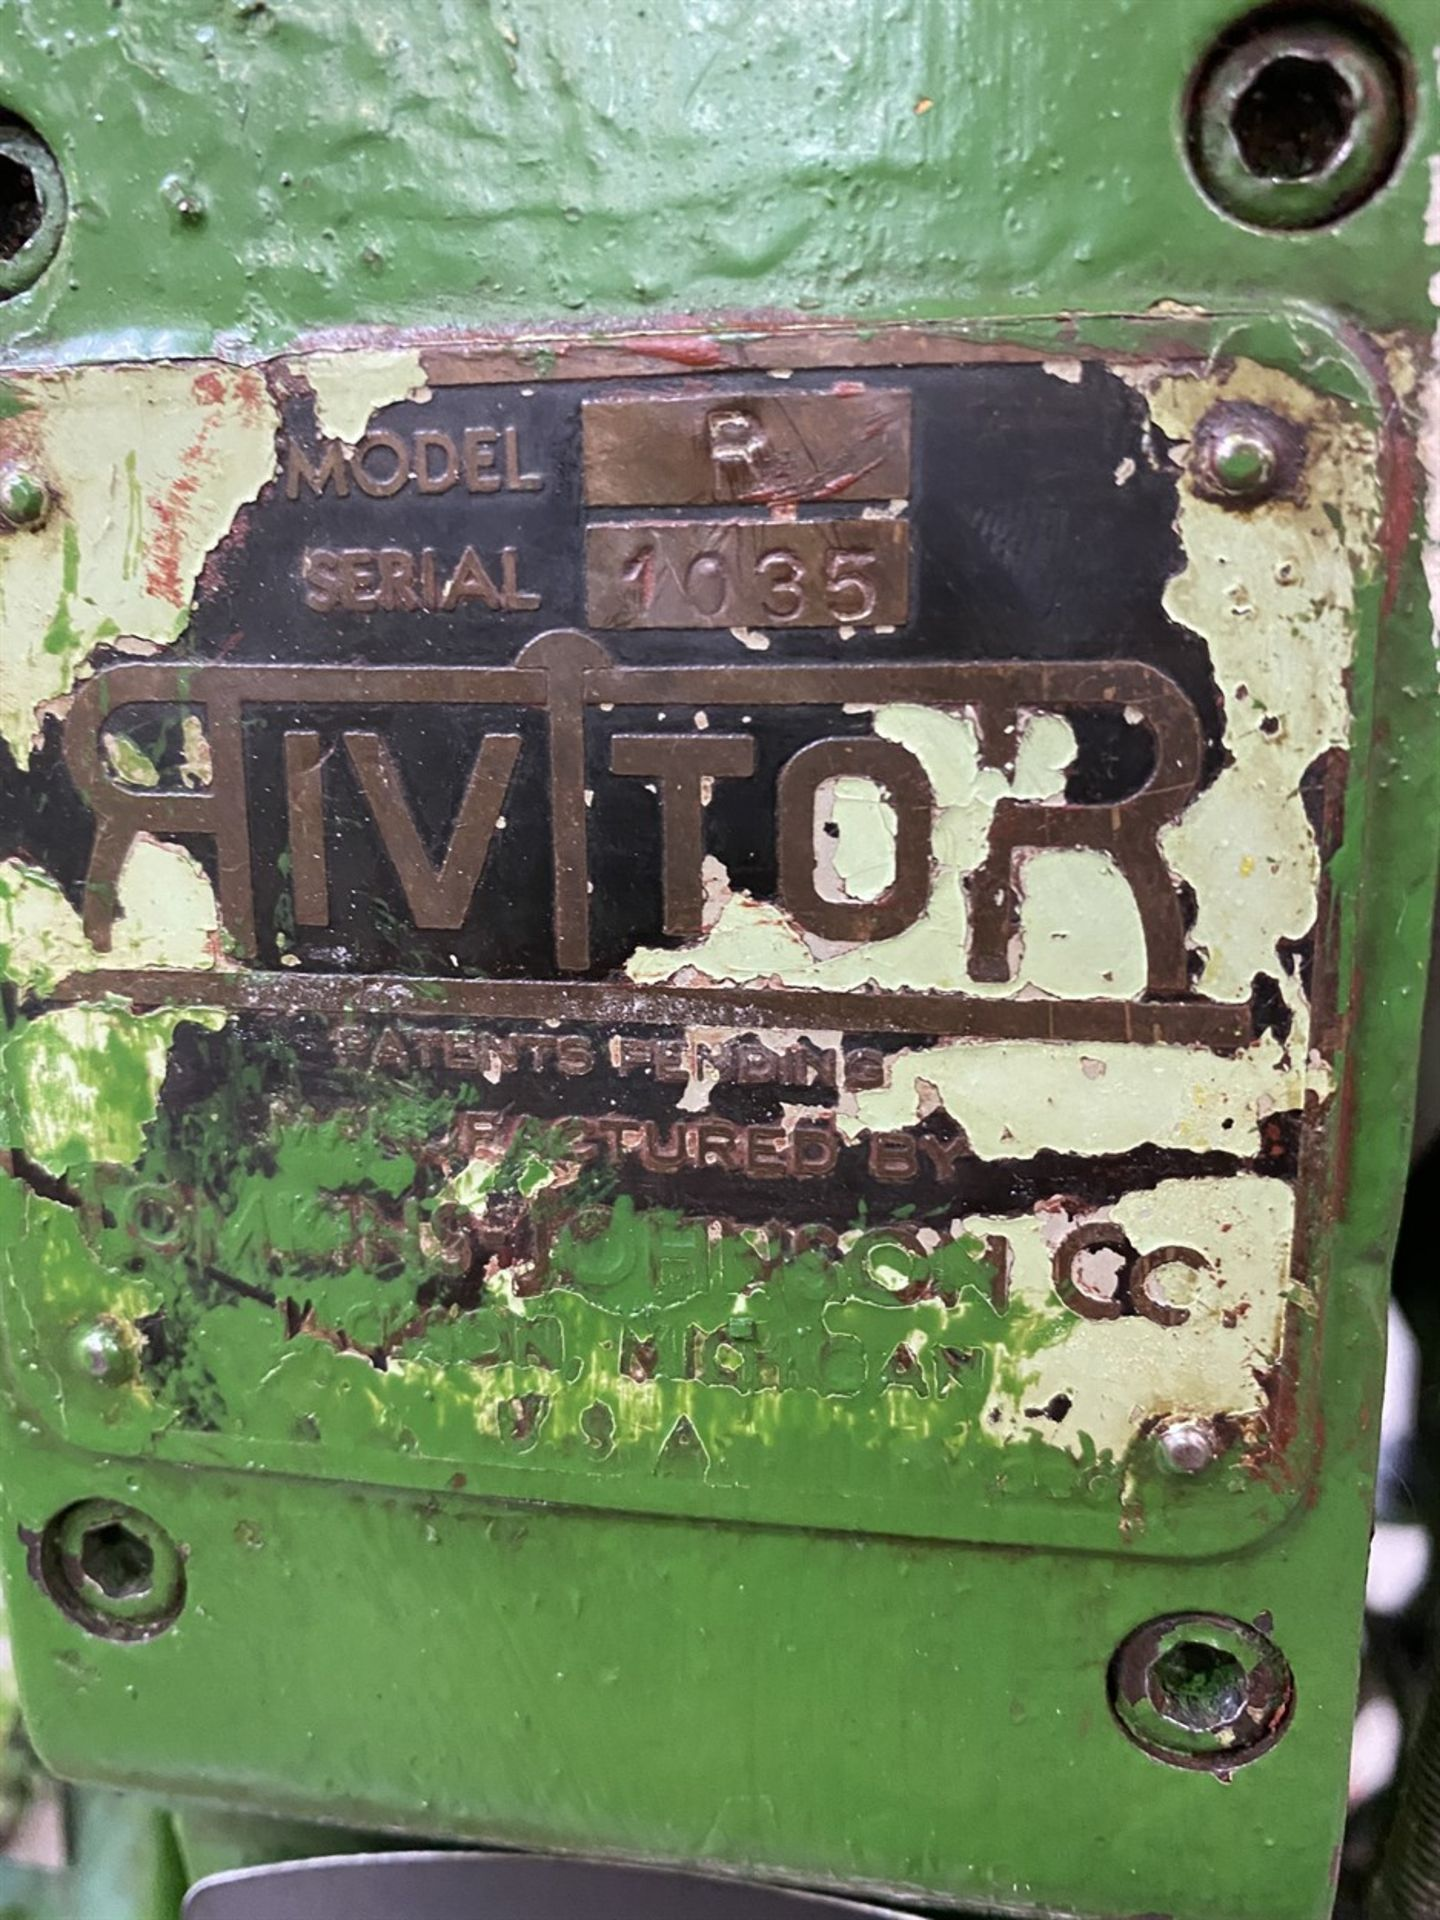 Lot 27 - RIVITOR R Rivet Machine, s/n 1035, w/ Touch-O-Matic 500-2-02 Safety Device